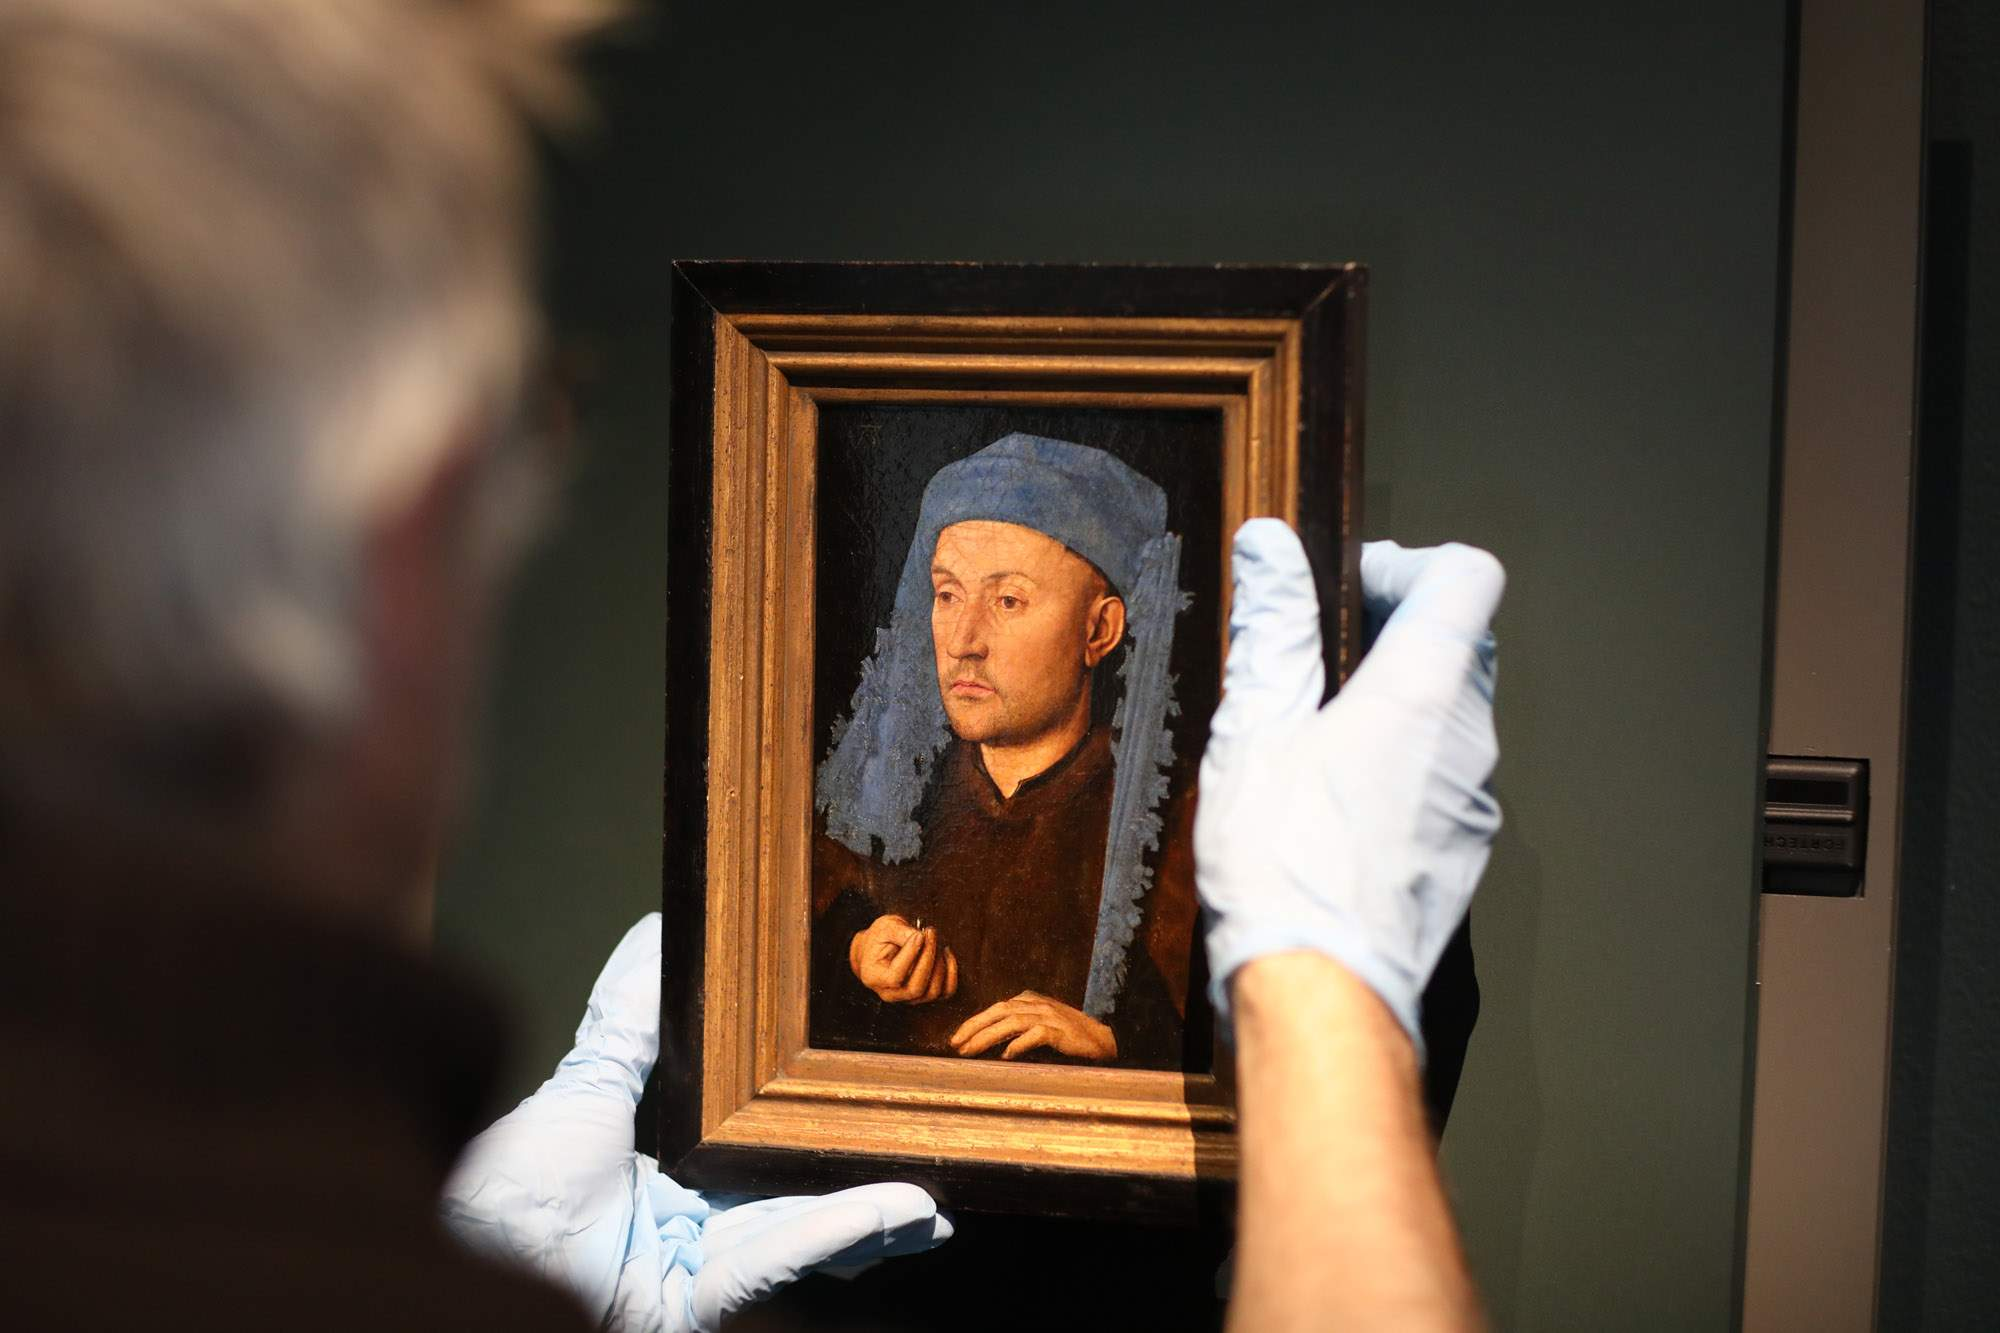 Installation of Jan van Eyck, Portrait of a man with a blue chaperon, c. 1428-1430 (Muzeul National Brukenthal, Sibiu, Romania) (c) Museum of Fine Arts Ghent, photography David Levene (3). Una visita virtual